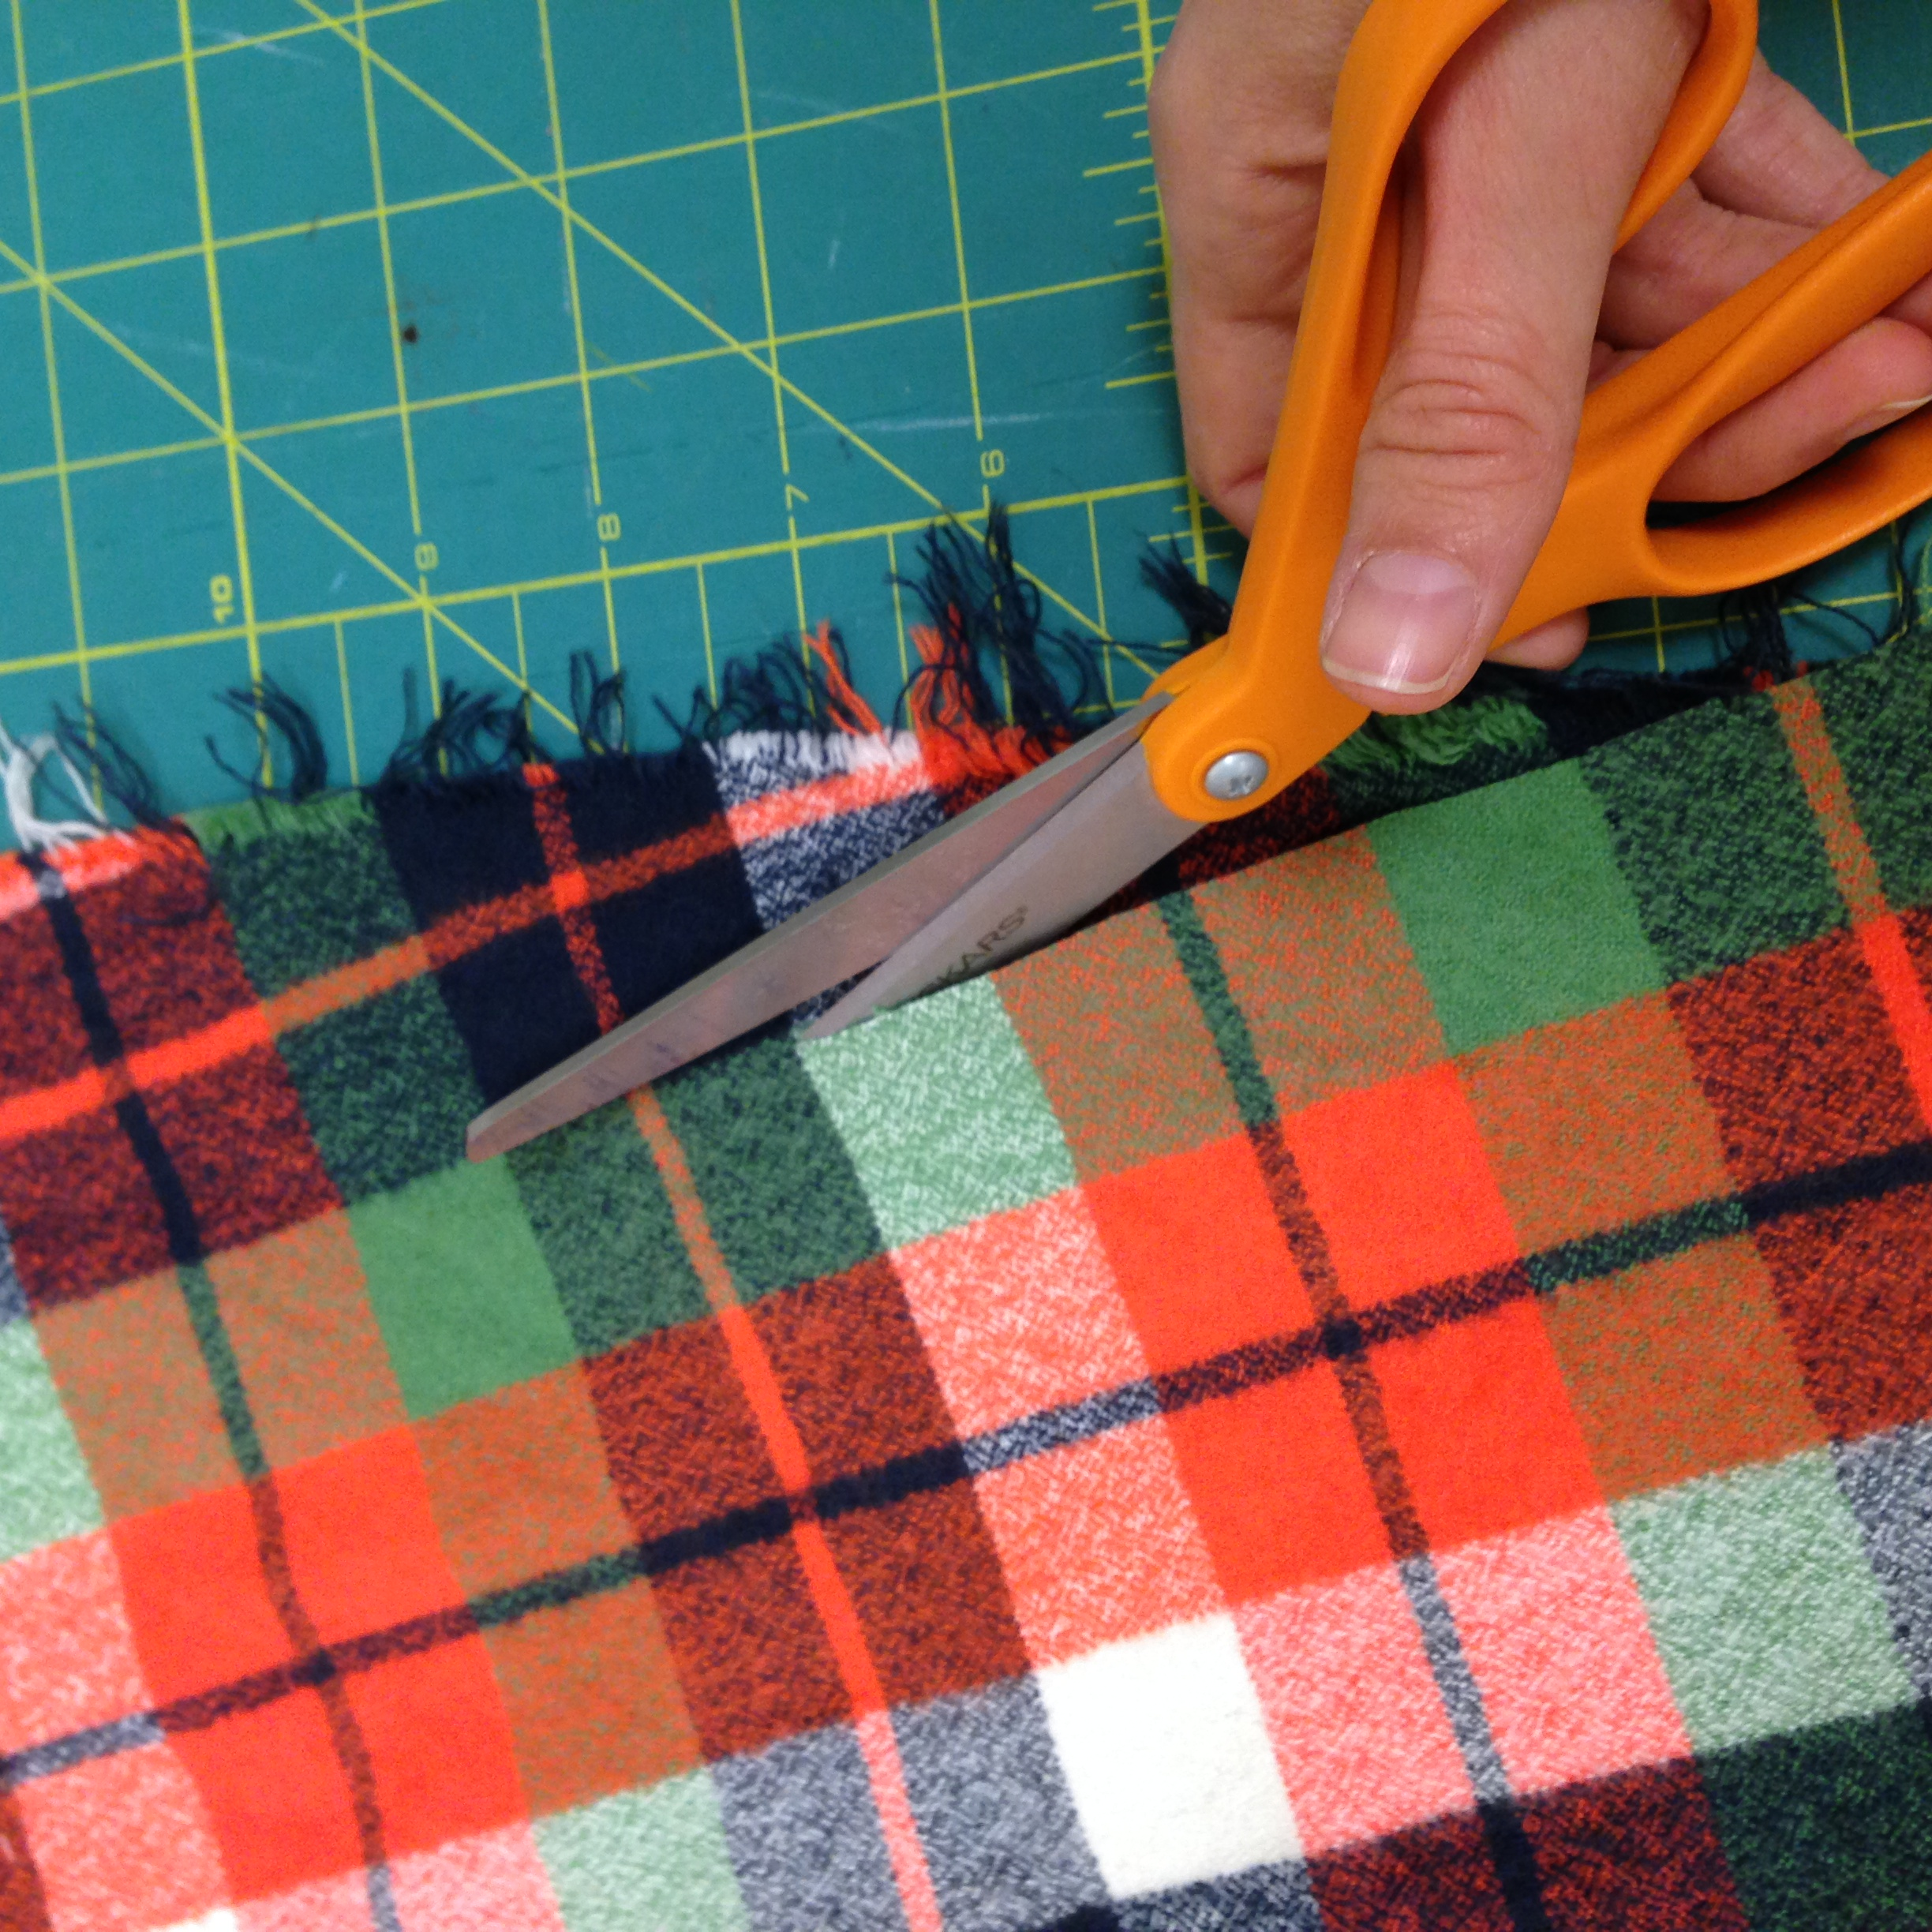 Cutting along the edge of the green stripe of the fabric to find the grain.